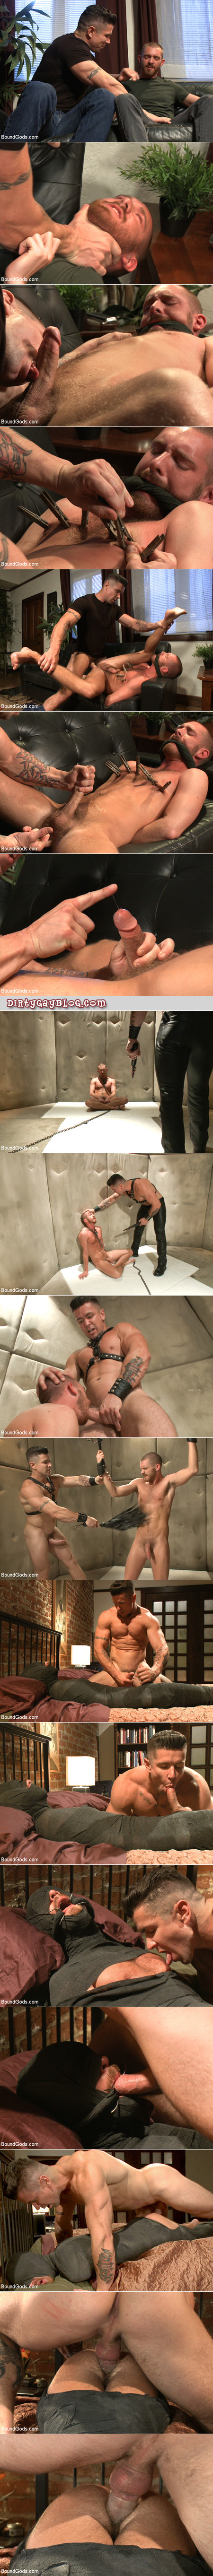 Tattooed muscleman with a big dick uses a scruffy young guy in gay bondage as his personal sex slave.